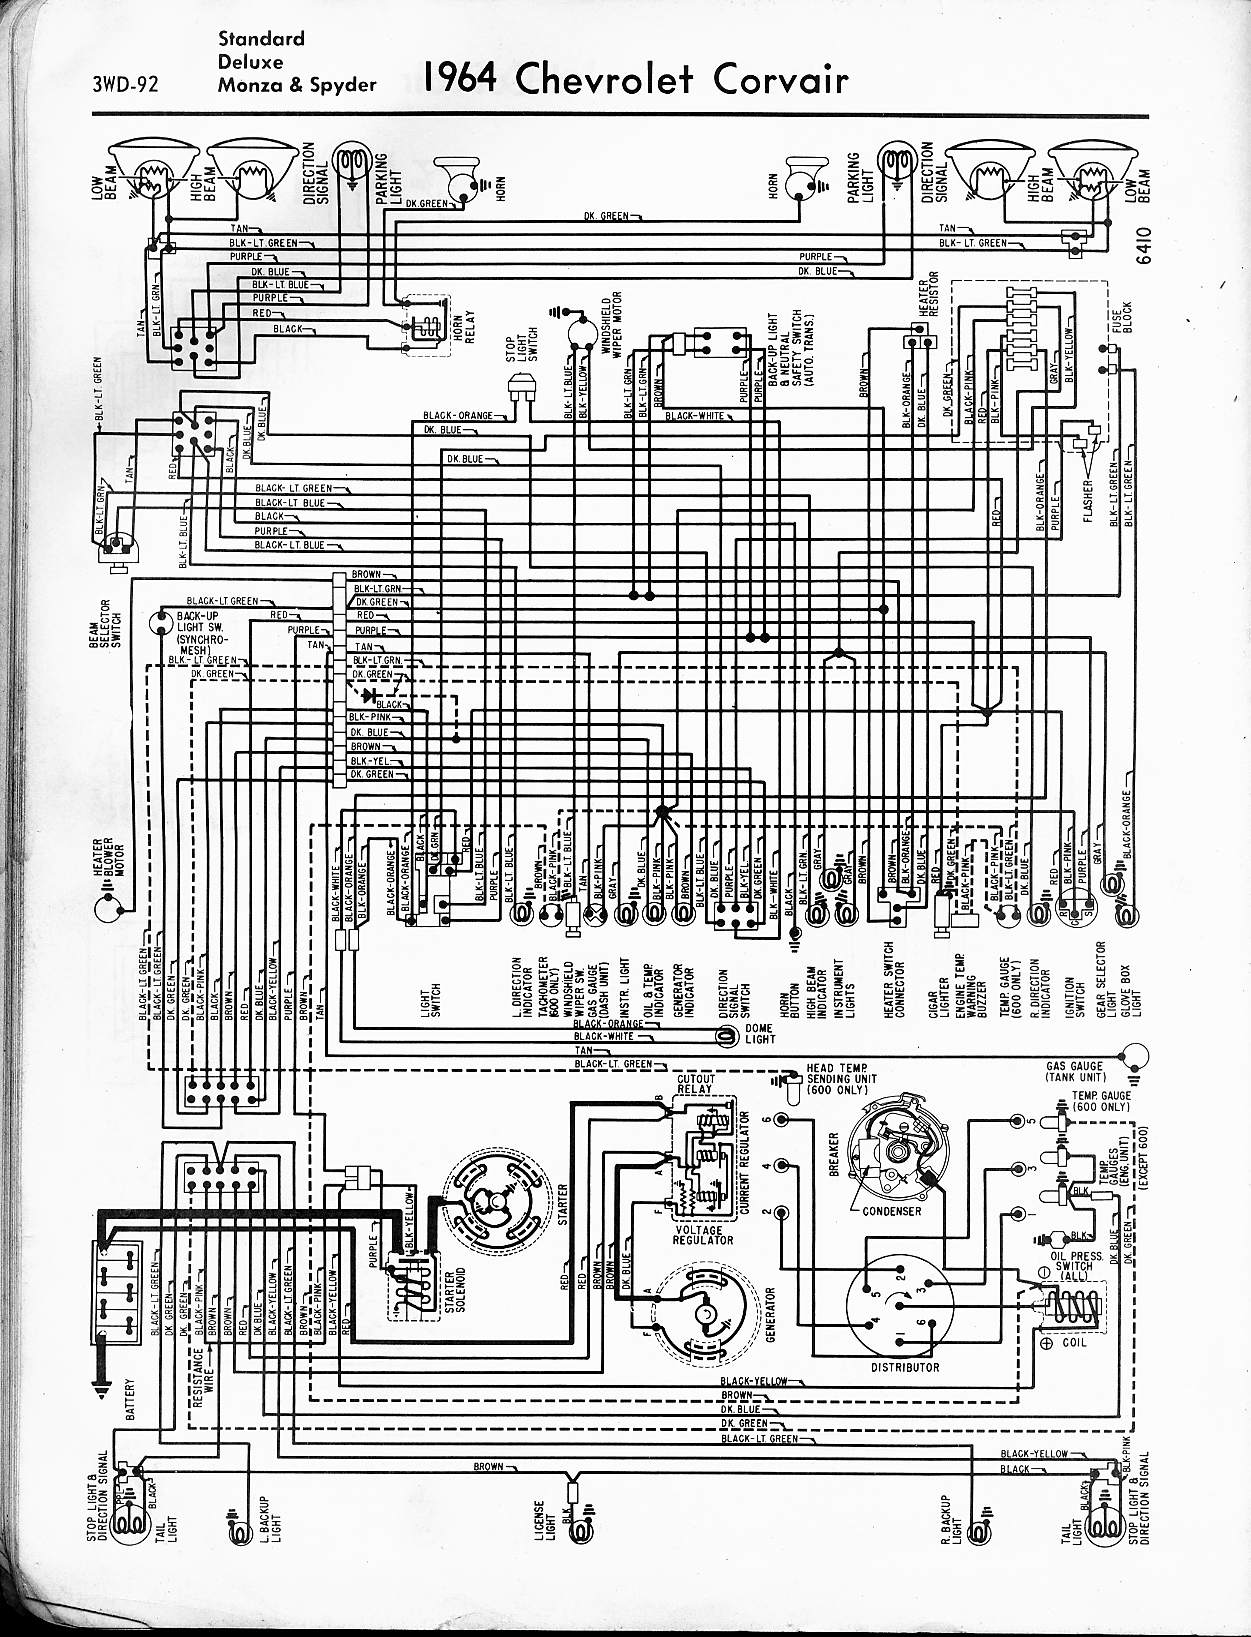 63 Nova Wiring Diagram Layout Diagrams 1962 Chevy C10 Steering Column 65 Experts Of U2022 Rh Evilcloud Co Uk 64